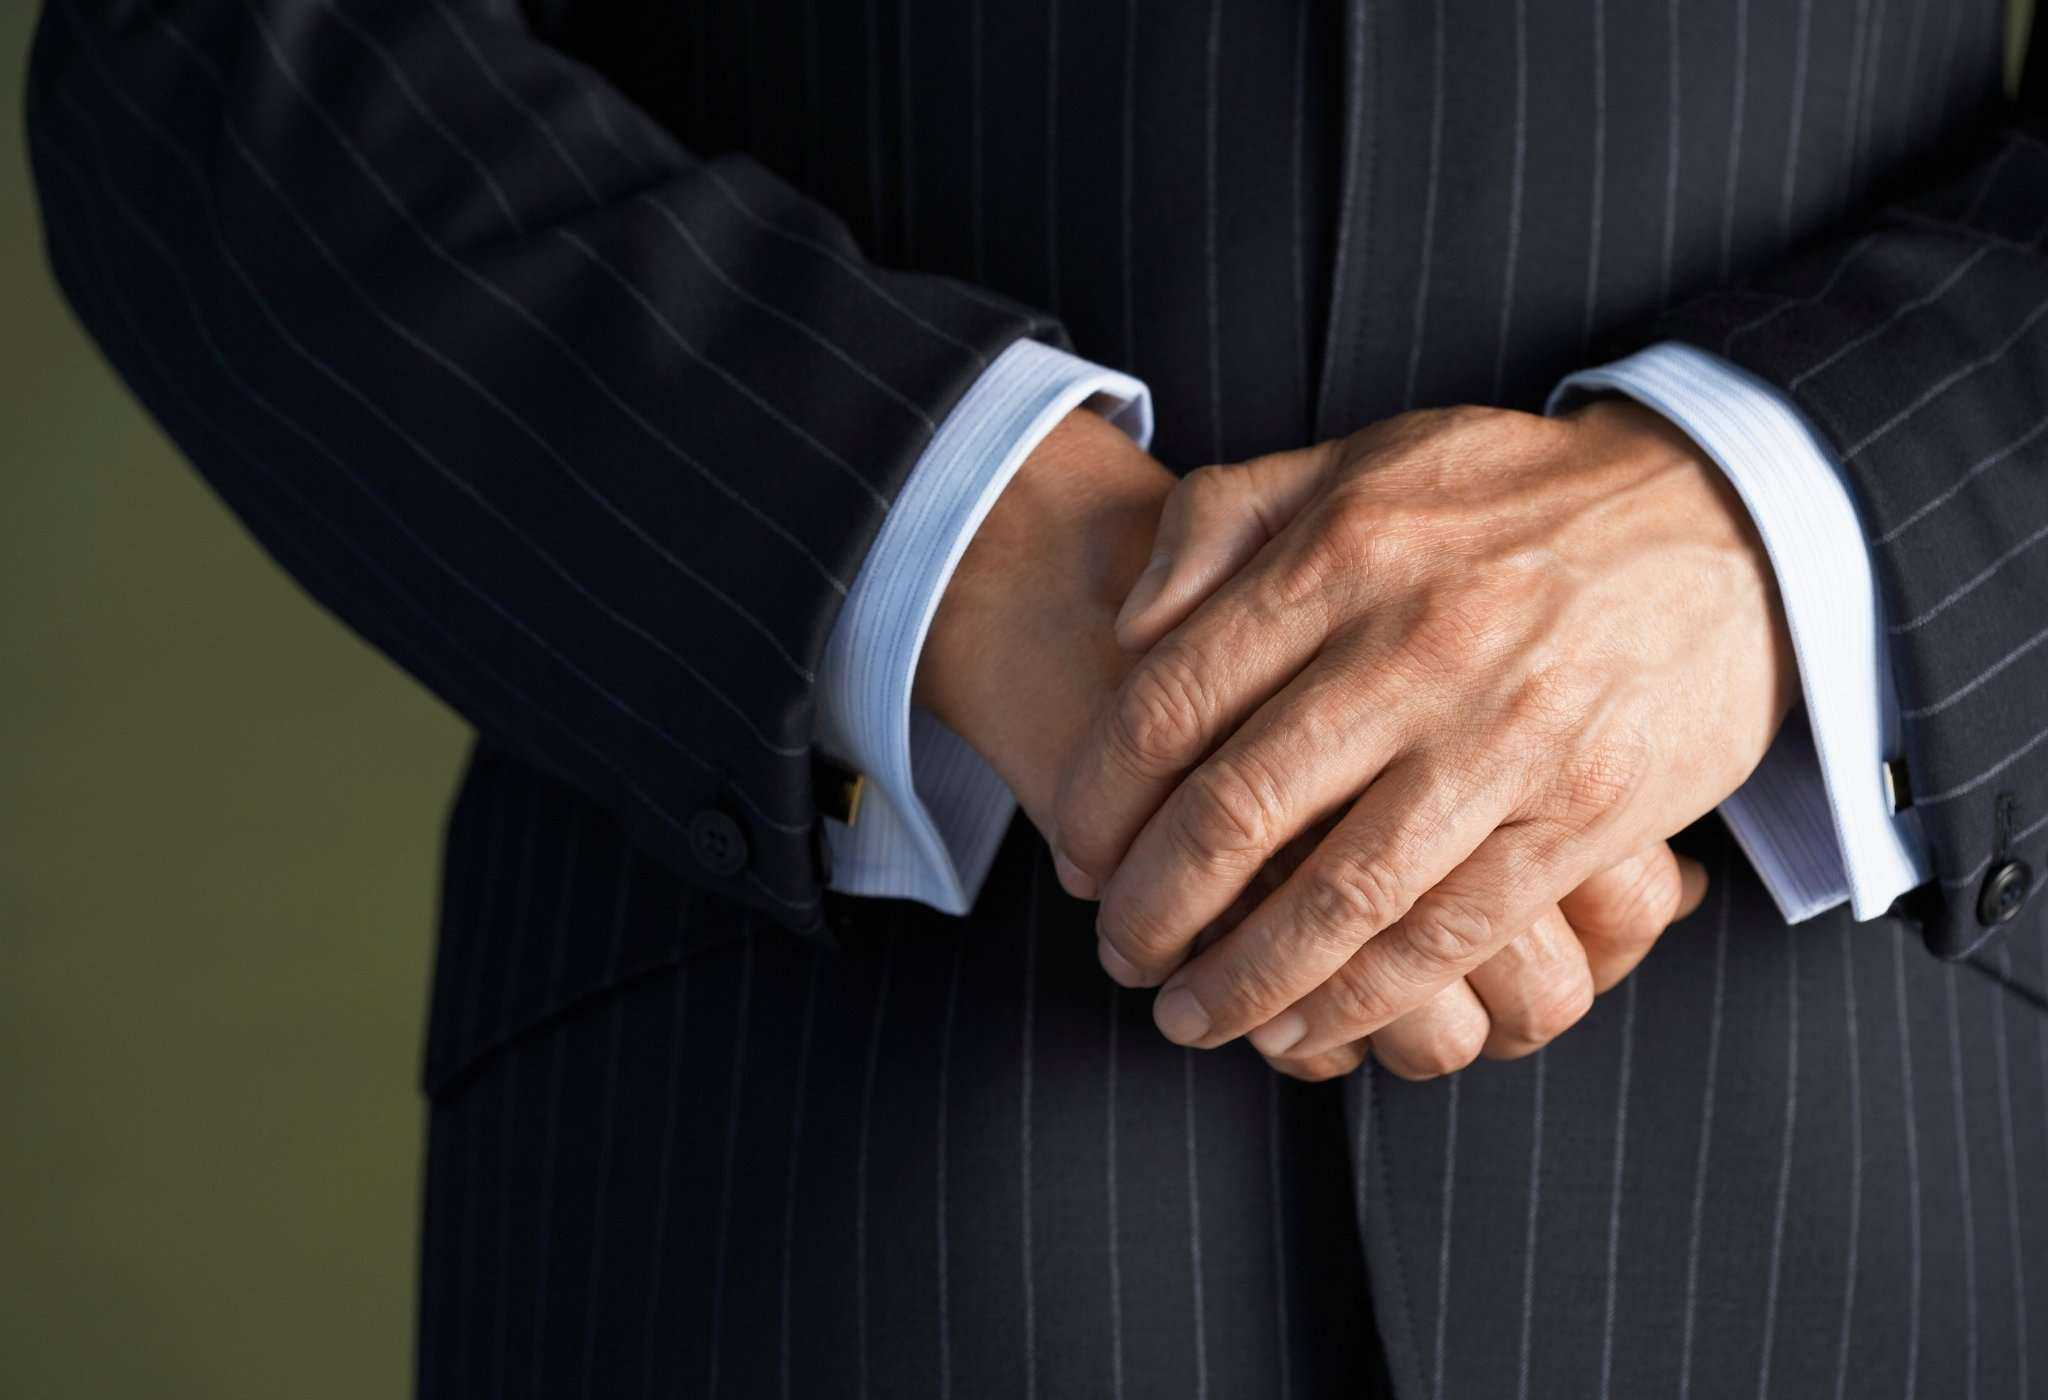 man in a suit with cuffs showing